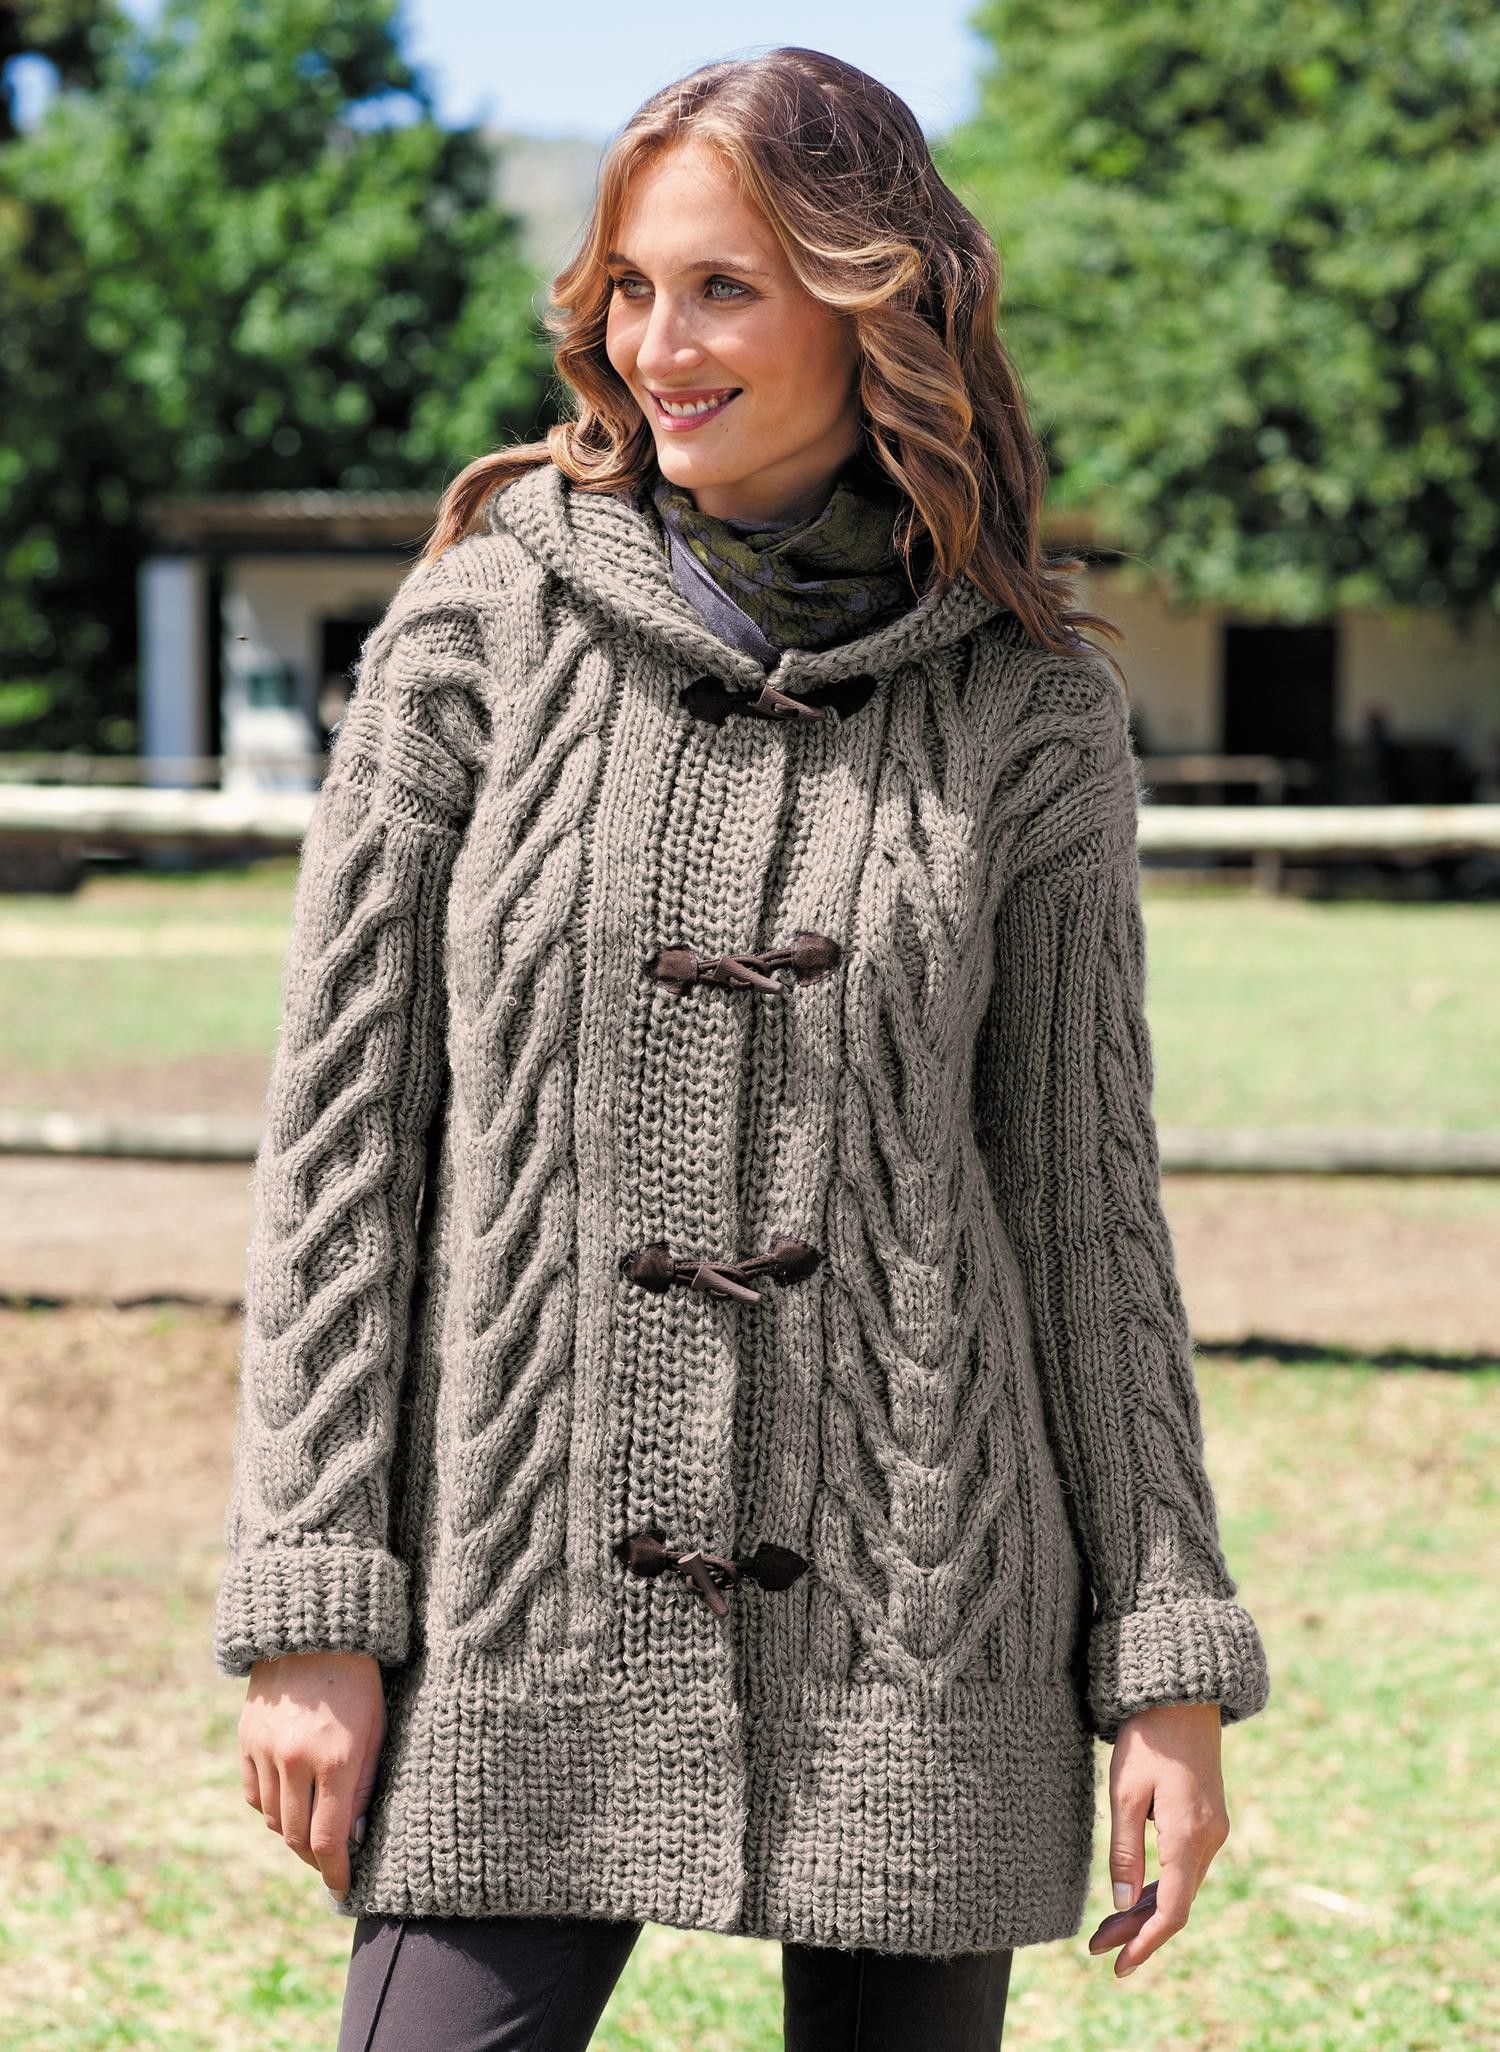 Cabled Hooded coat Free Knitting Pattern | Revere pewter paint ...